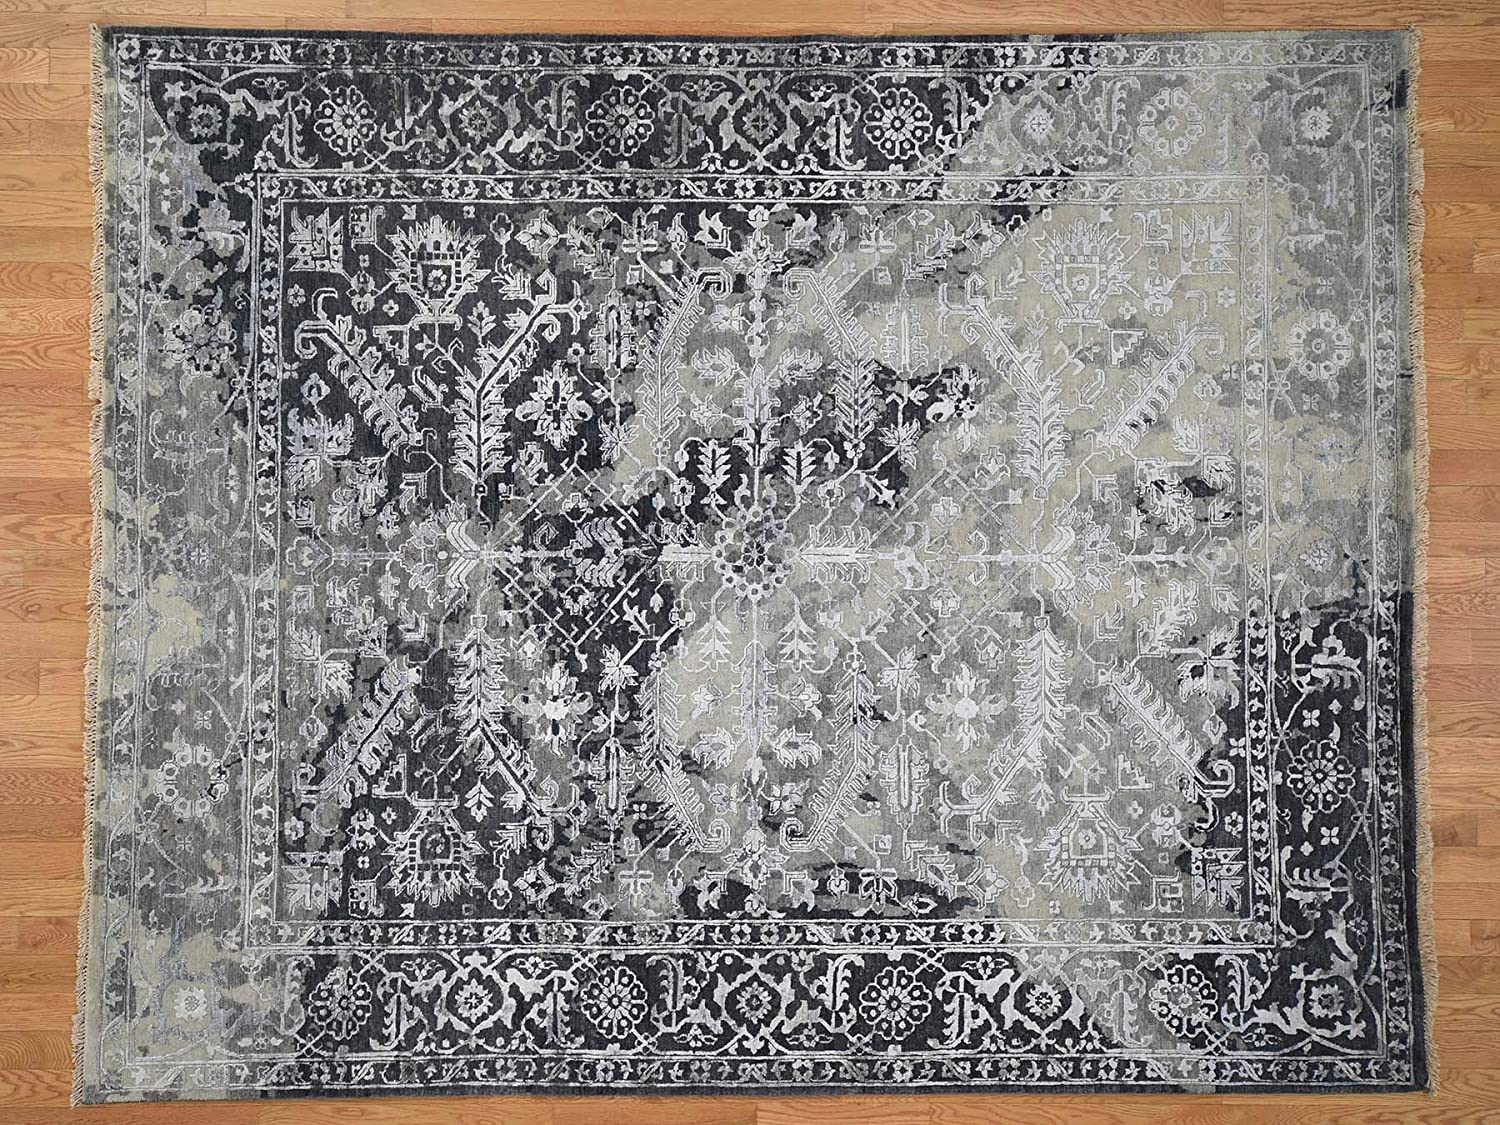 8'x10' Broken Attention brand Persian Heriz All Wool Silk Design Over Super beauty product restock quality top Hand-Kno